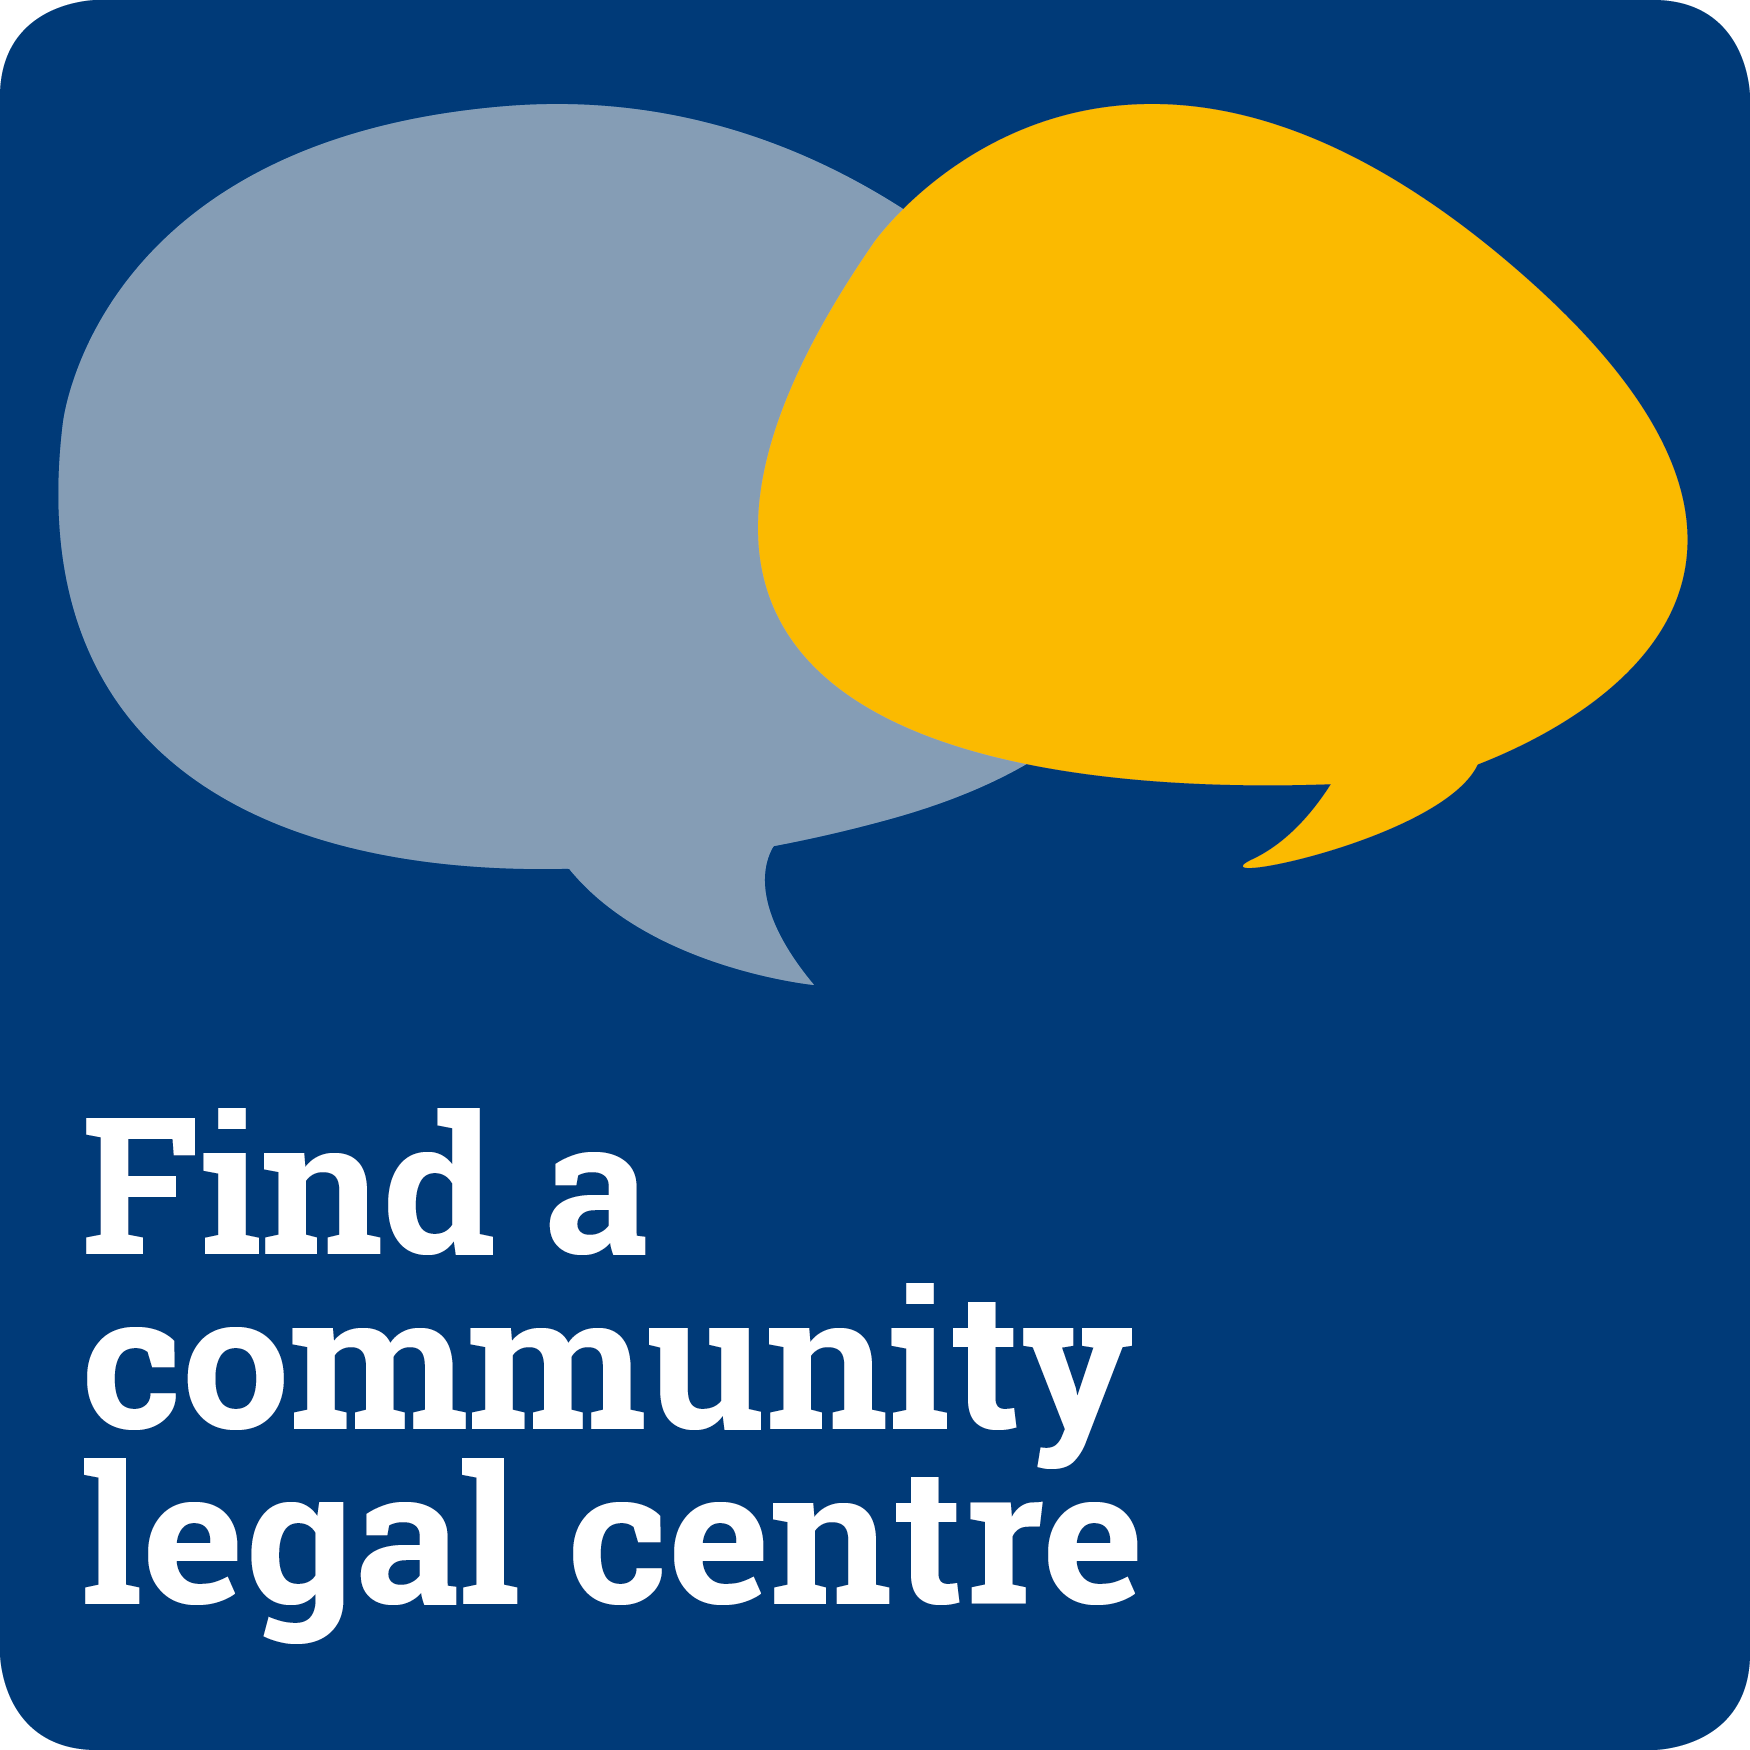 Find a community legal centre